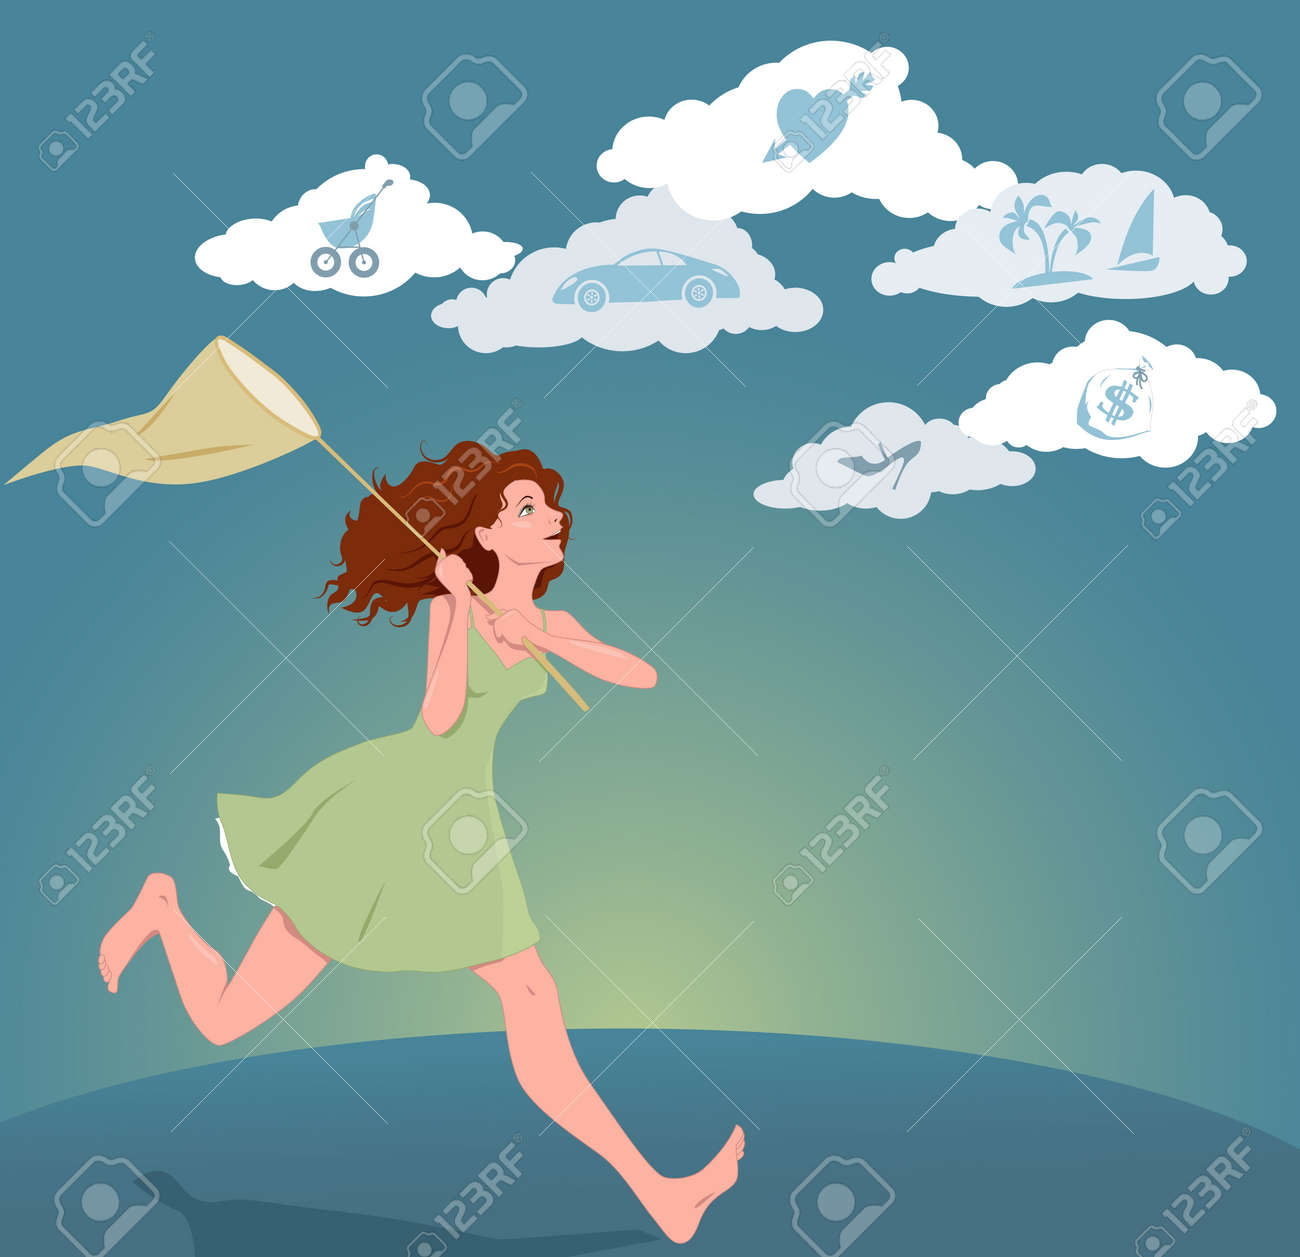 Girl With A Butterfly Net Running After Clouds With Symbols Of